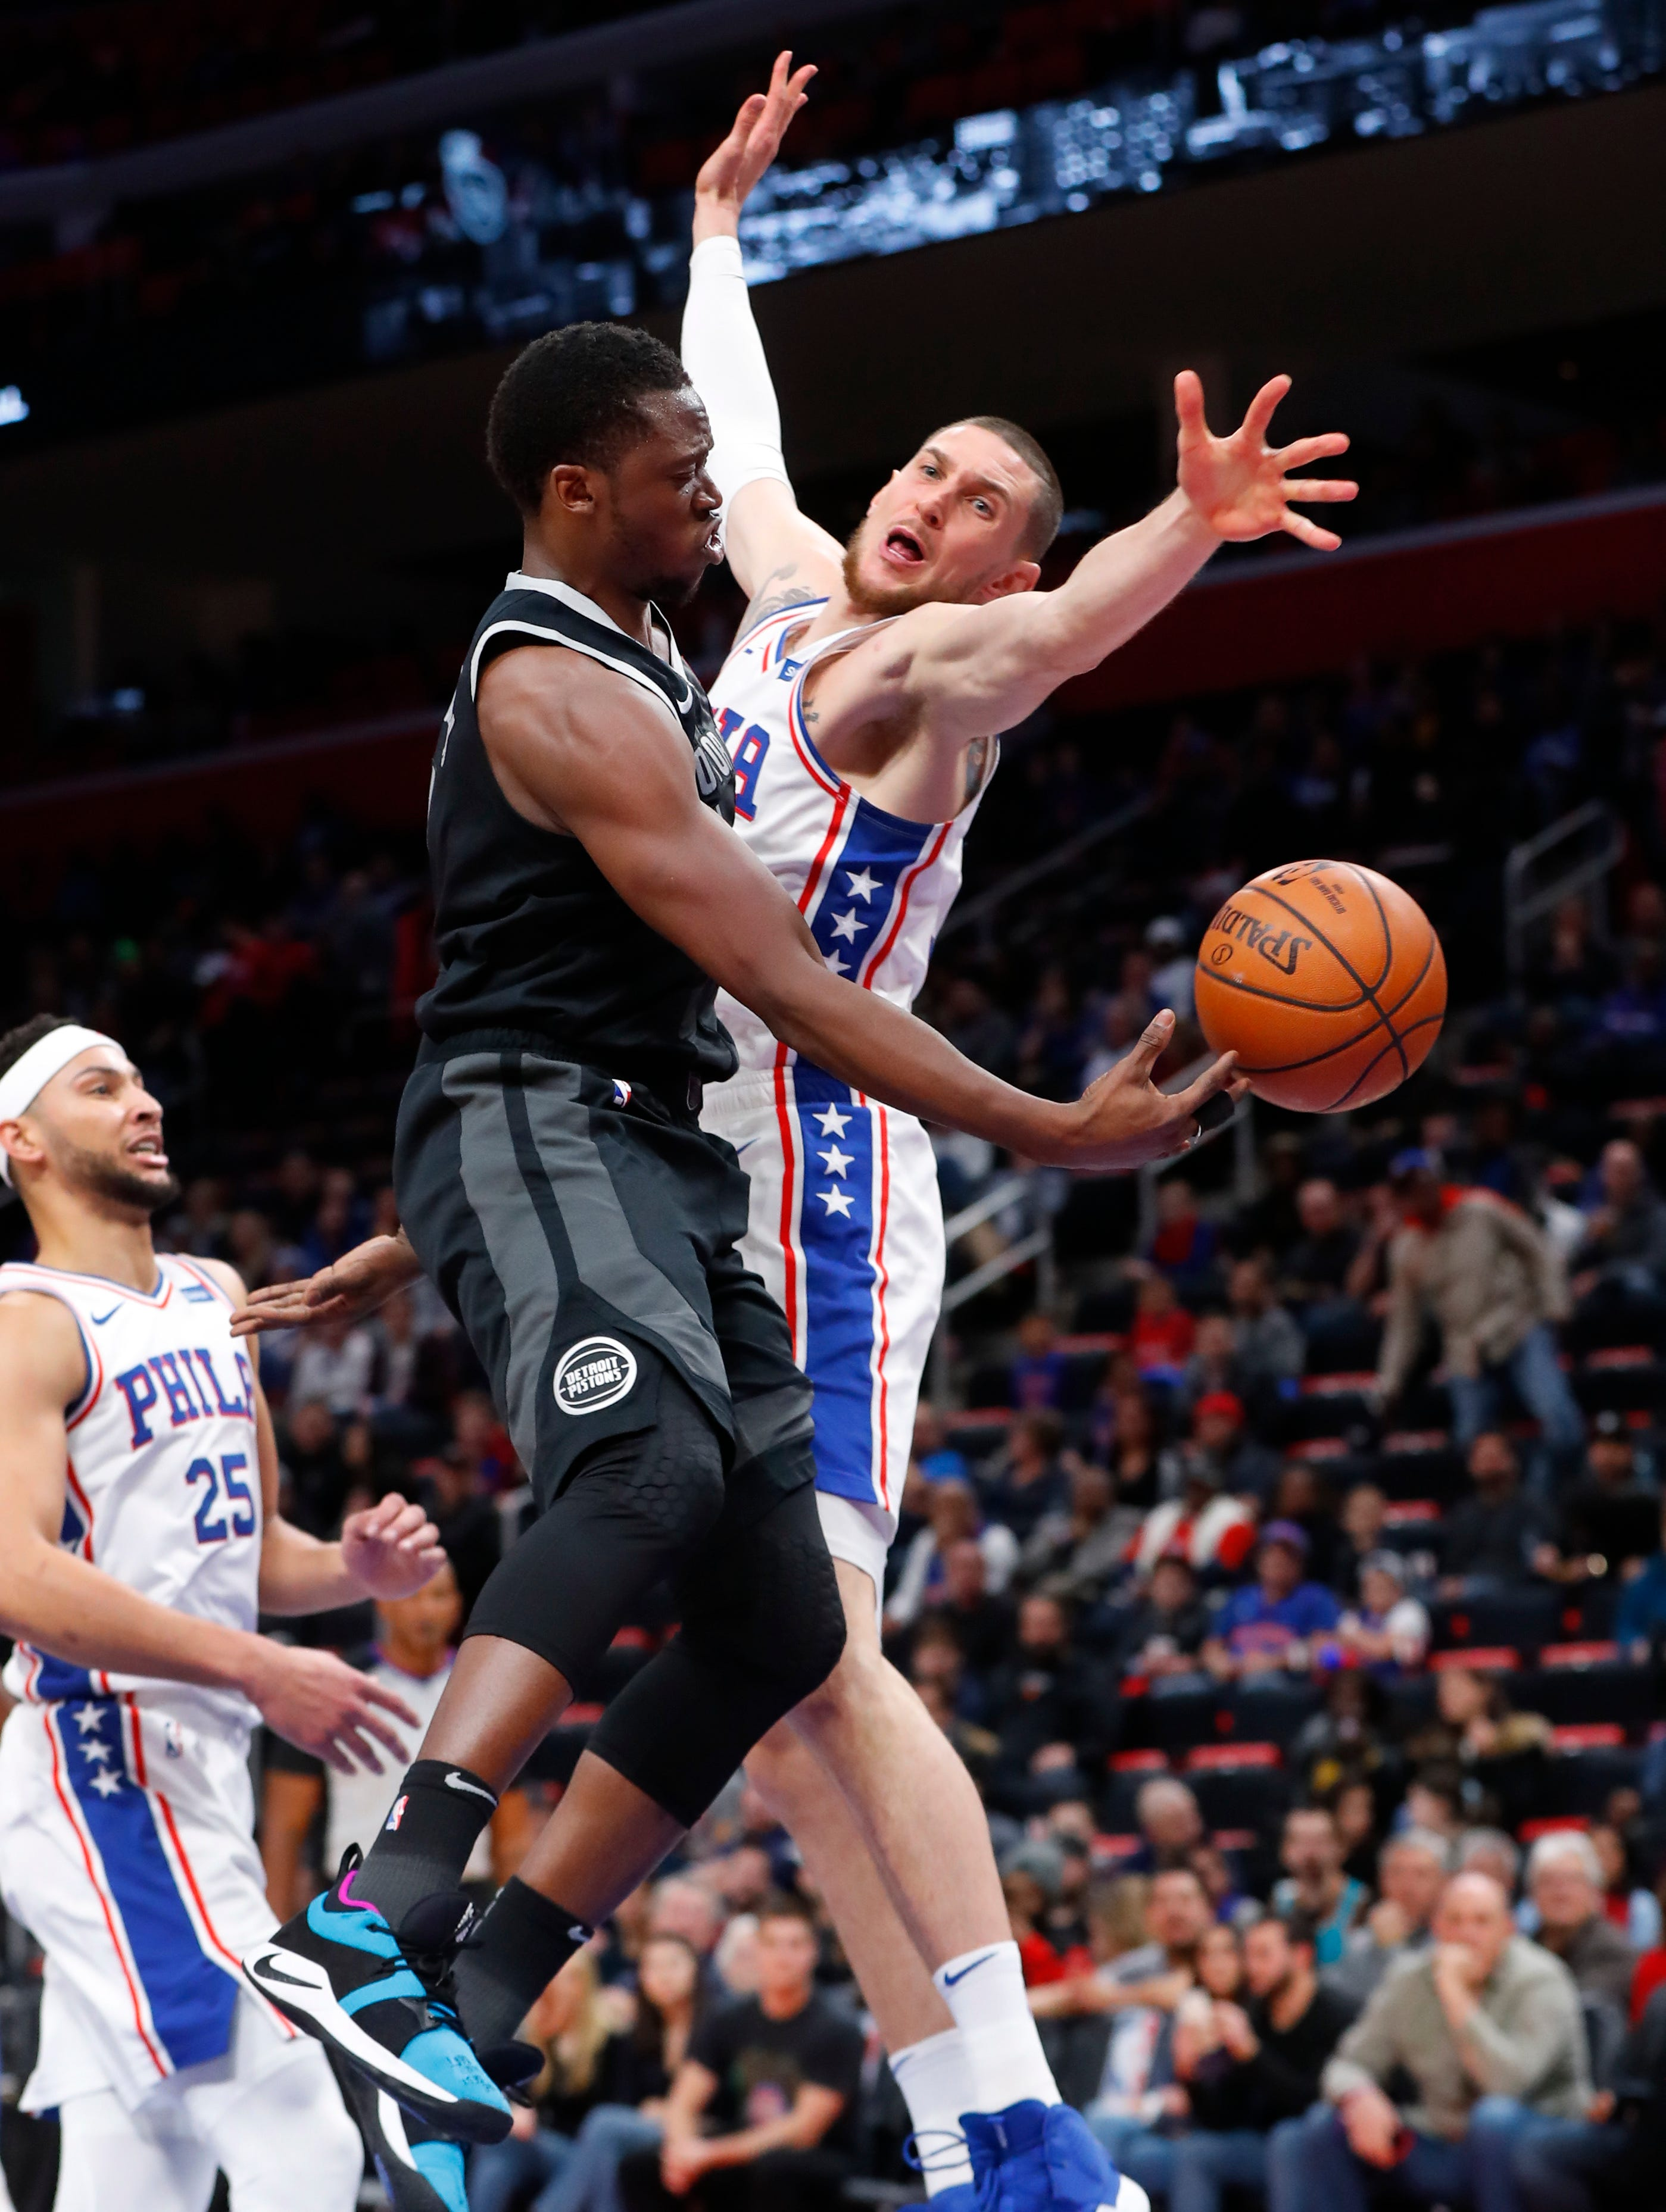 Butler, 76ers rally without Embiid, beat Pistons 117-111